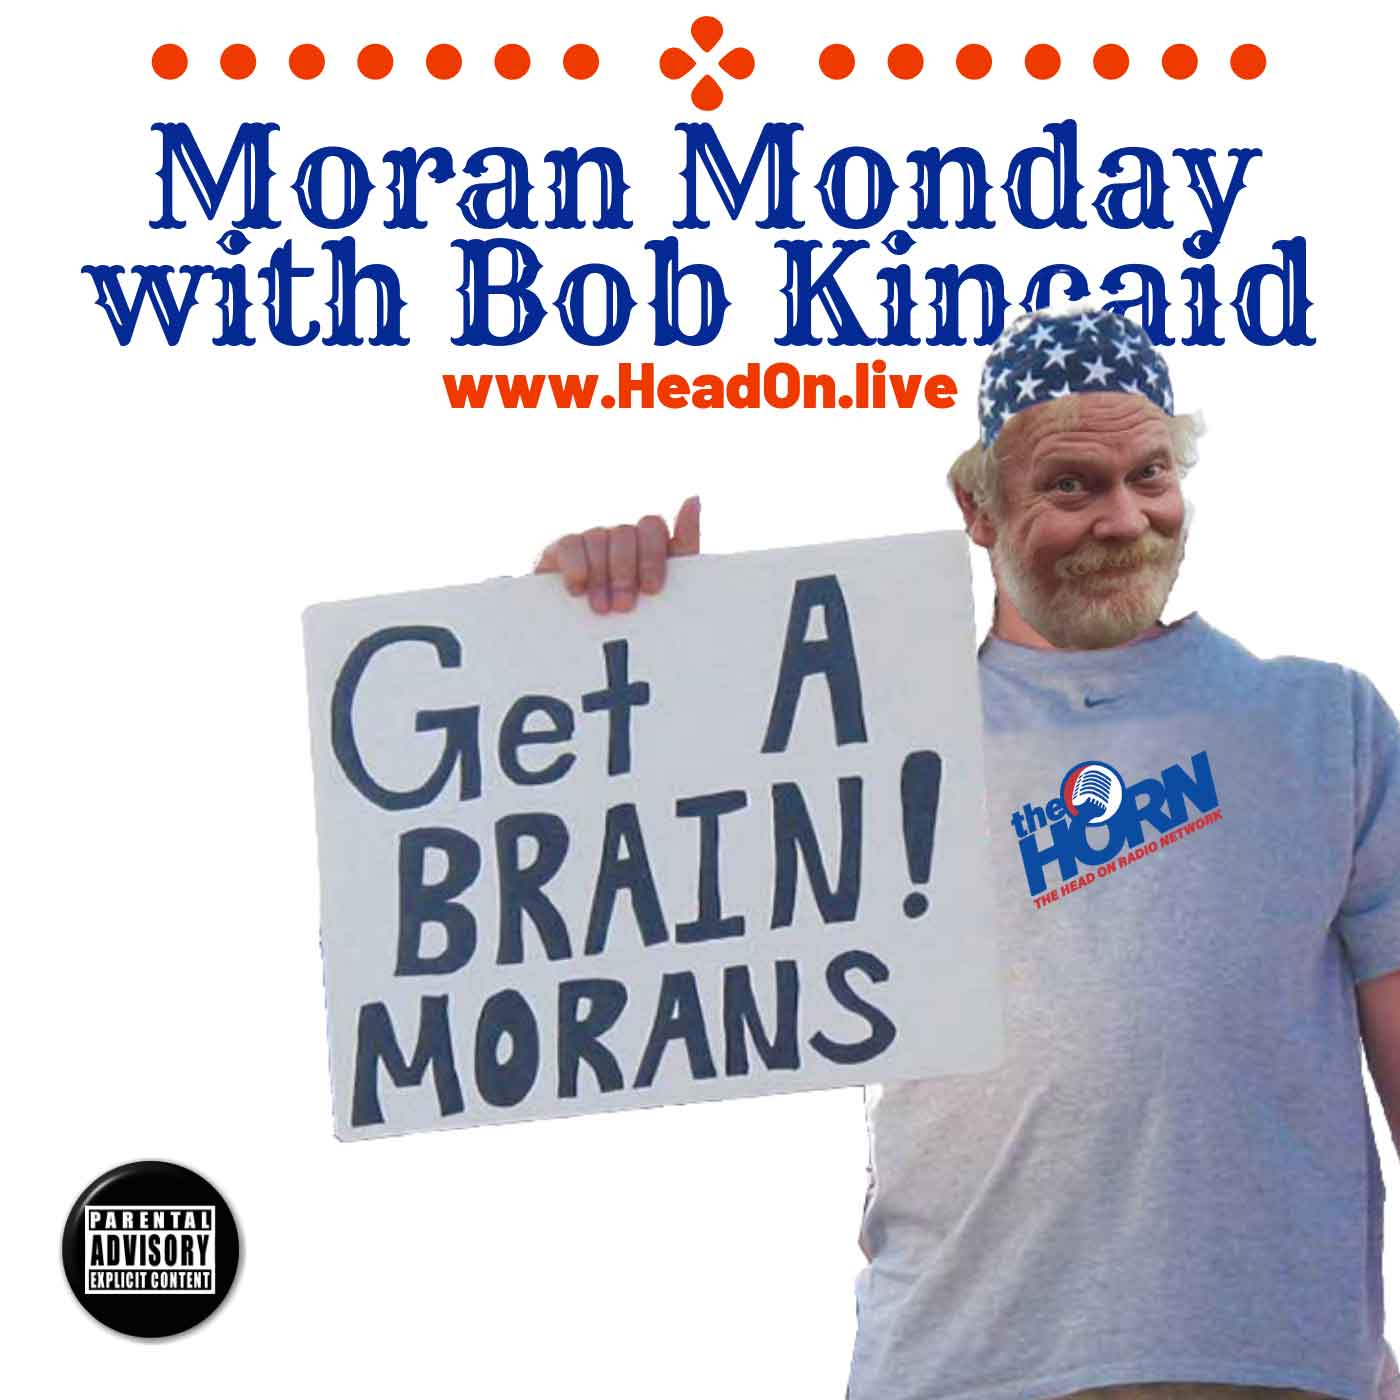 Moran Monday, Head-ON With Bob Kincaid, 23 December 2019